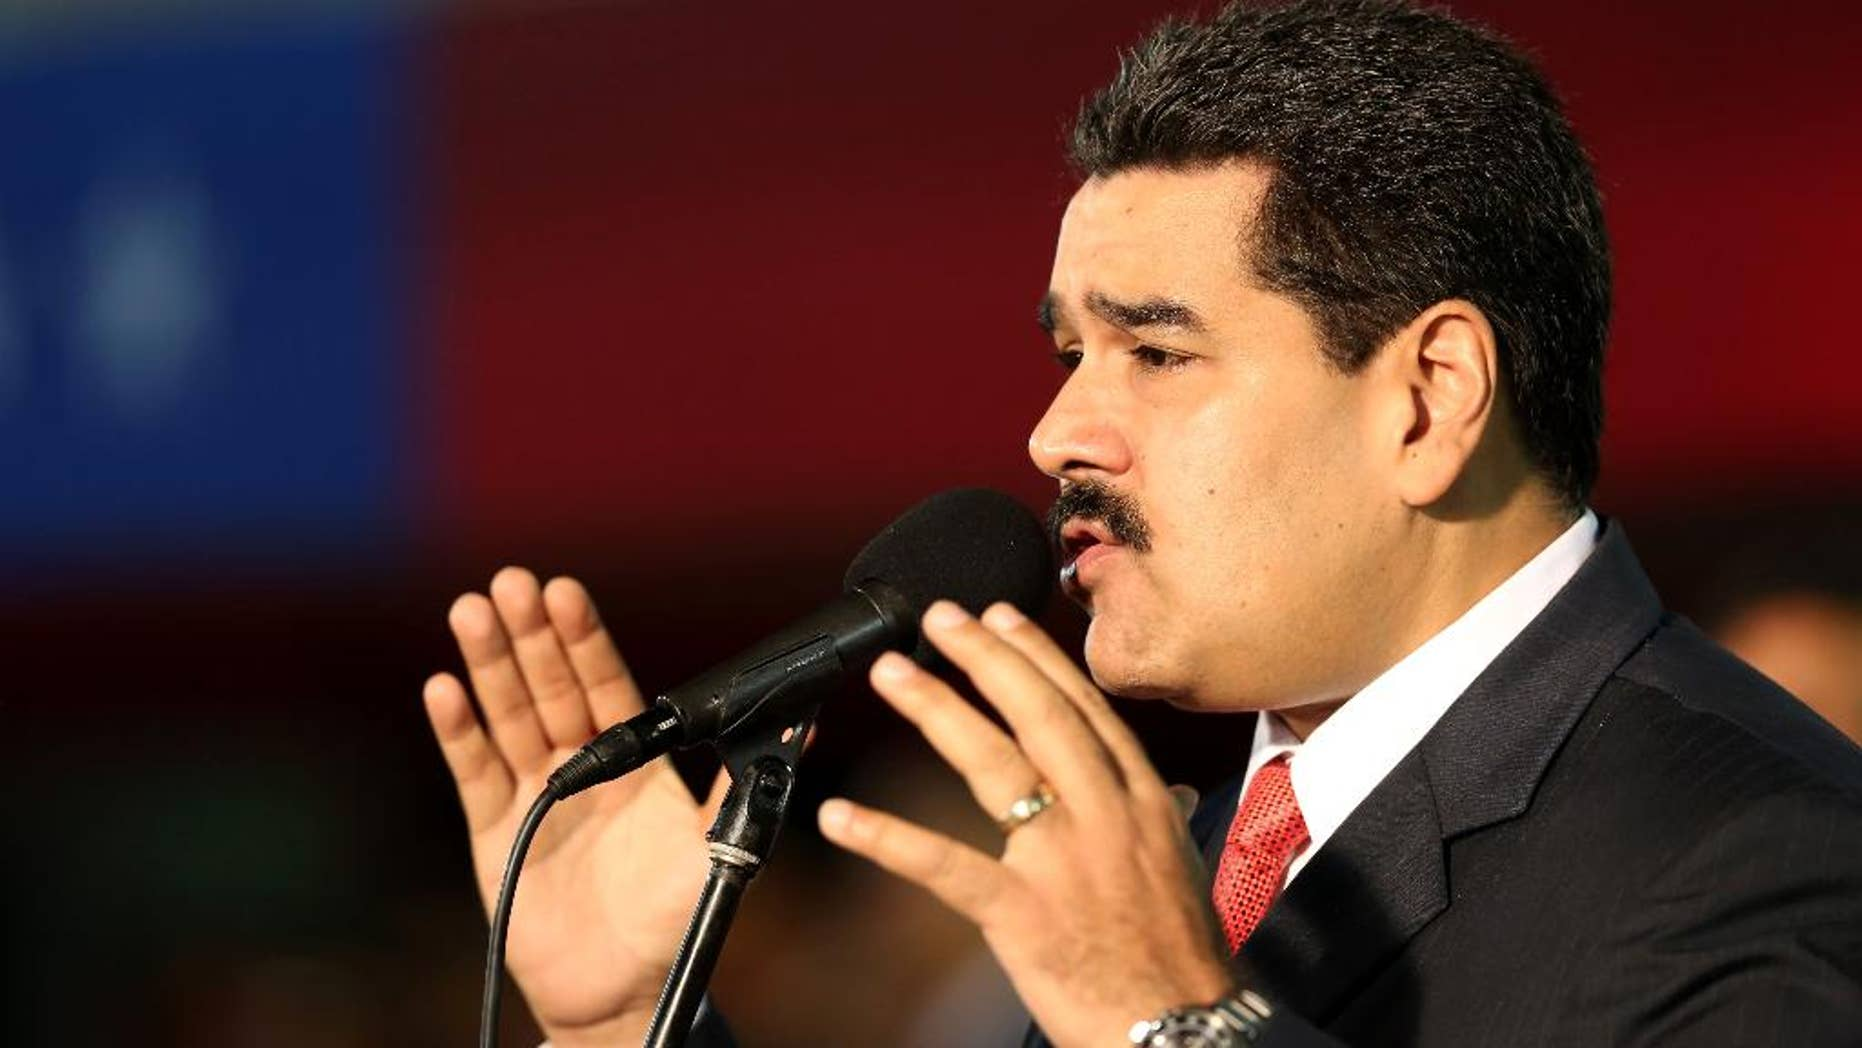 Venezuela's President Nicolas Maduro, delivers his speech during the new military chief's swearing-in ceremony at the Fort Tiuna military base in Caracas, Venezuela, Monday, Oct. 27, 2014. (AP Photo/Ariana Cubillos)